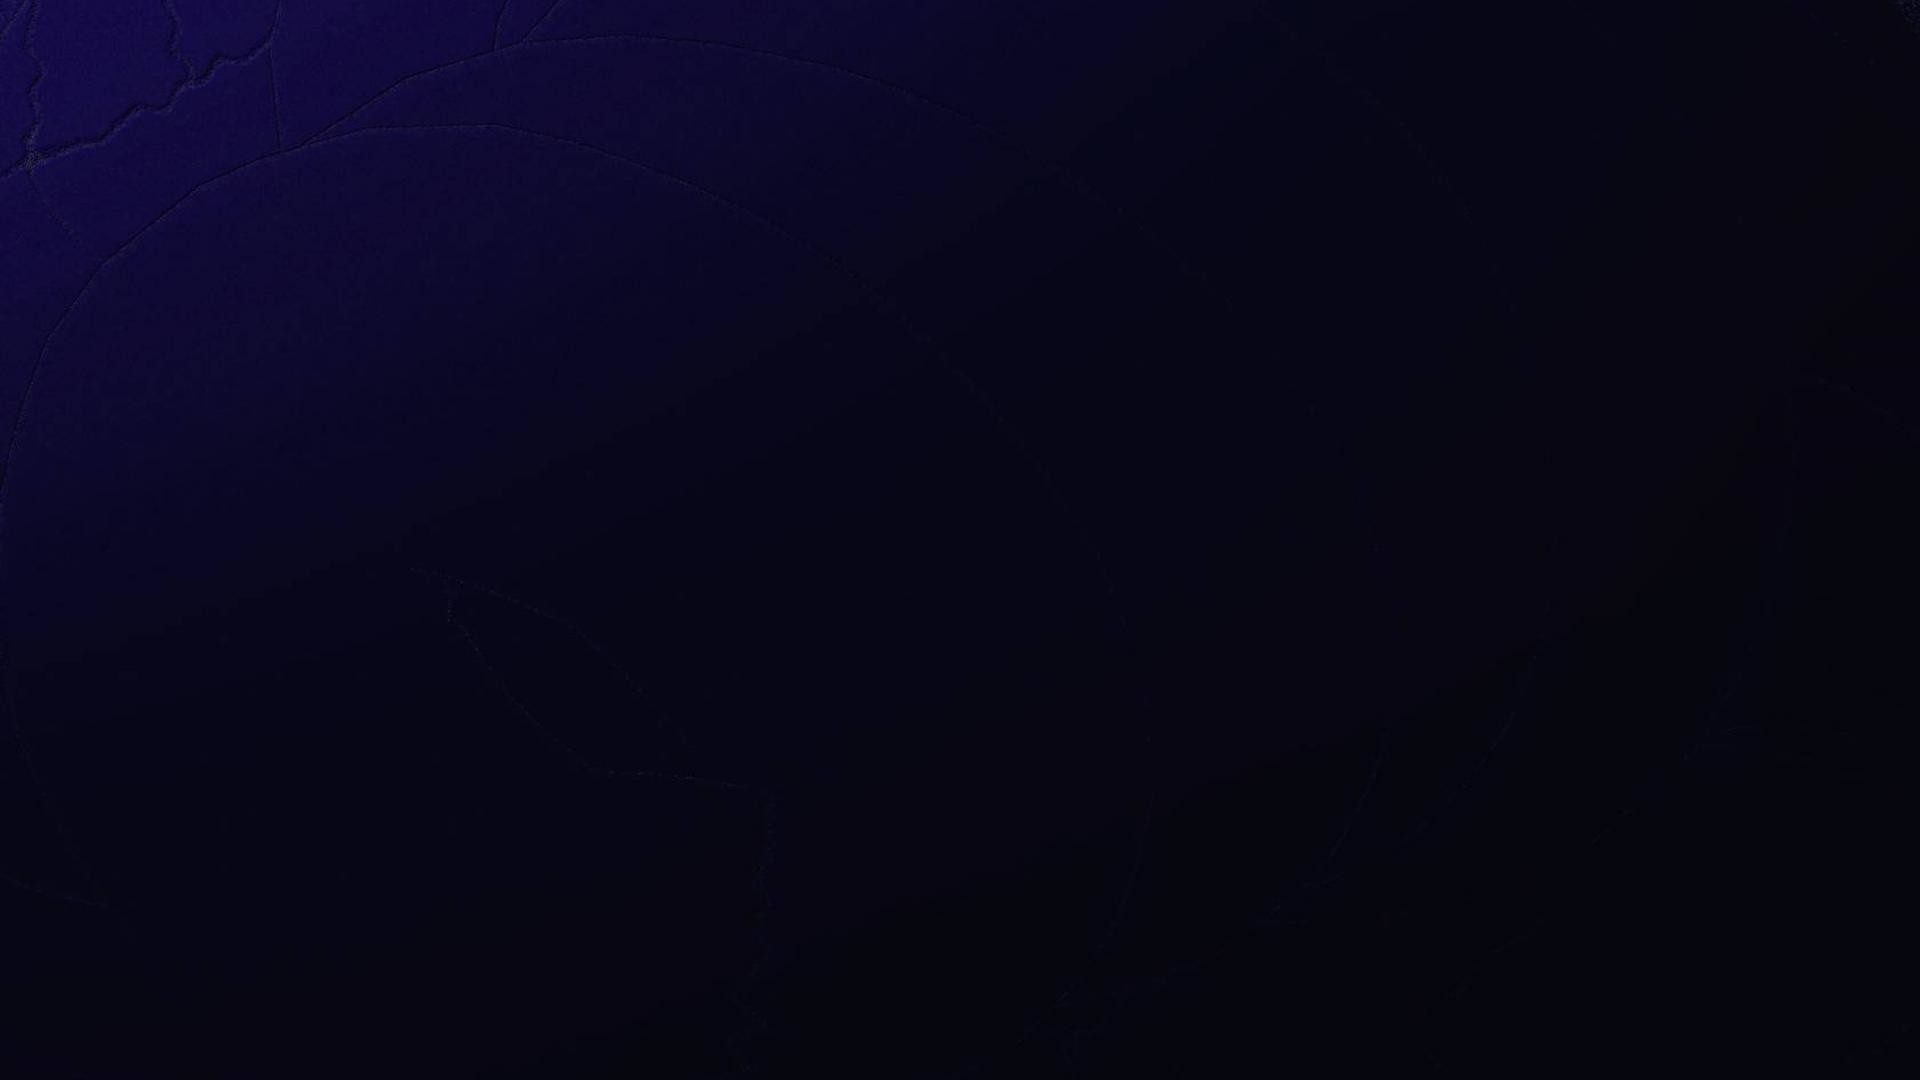 Dark Blue Background Wallpapers 68 Background Pictures